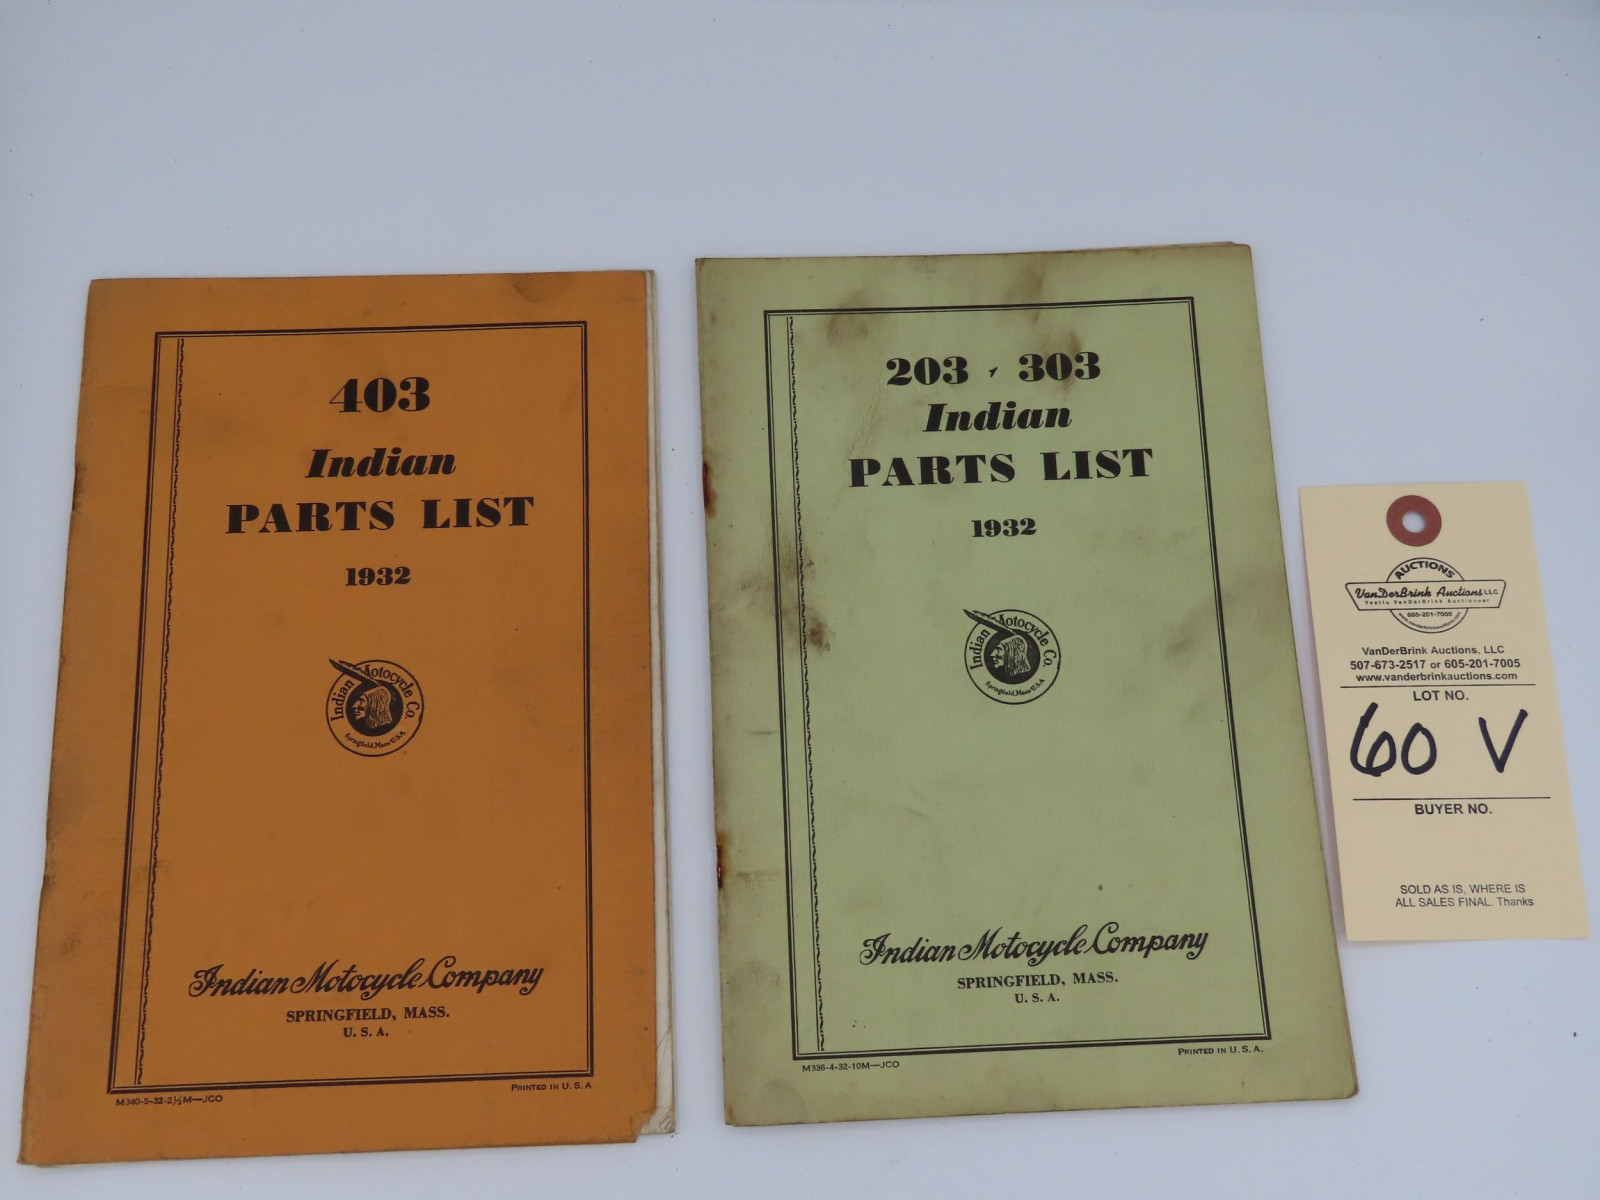 Indian Parts List Manual - Image 1